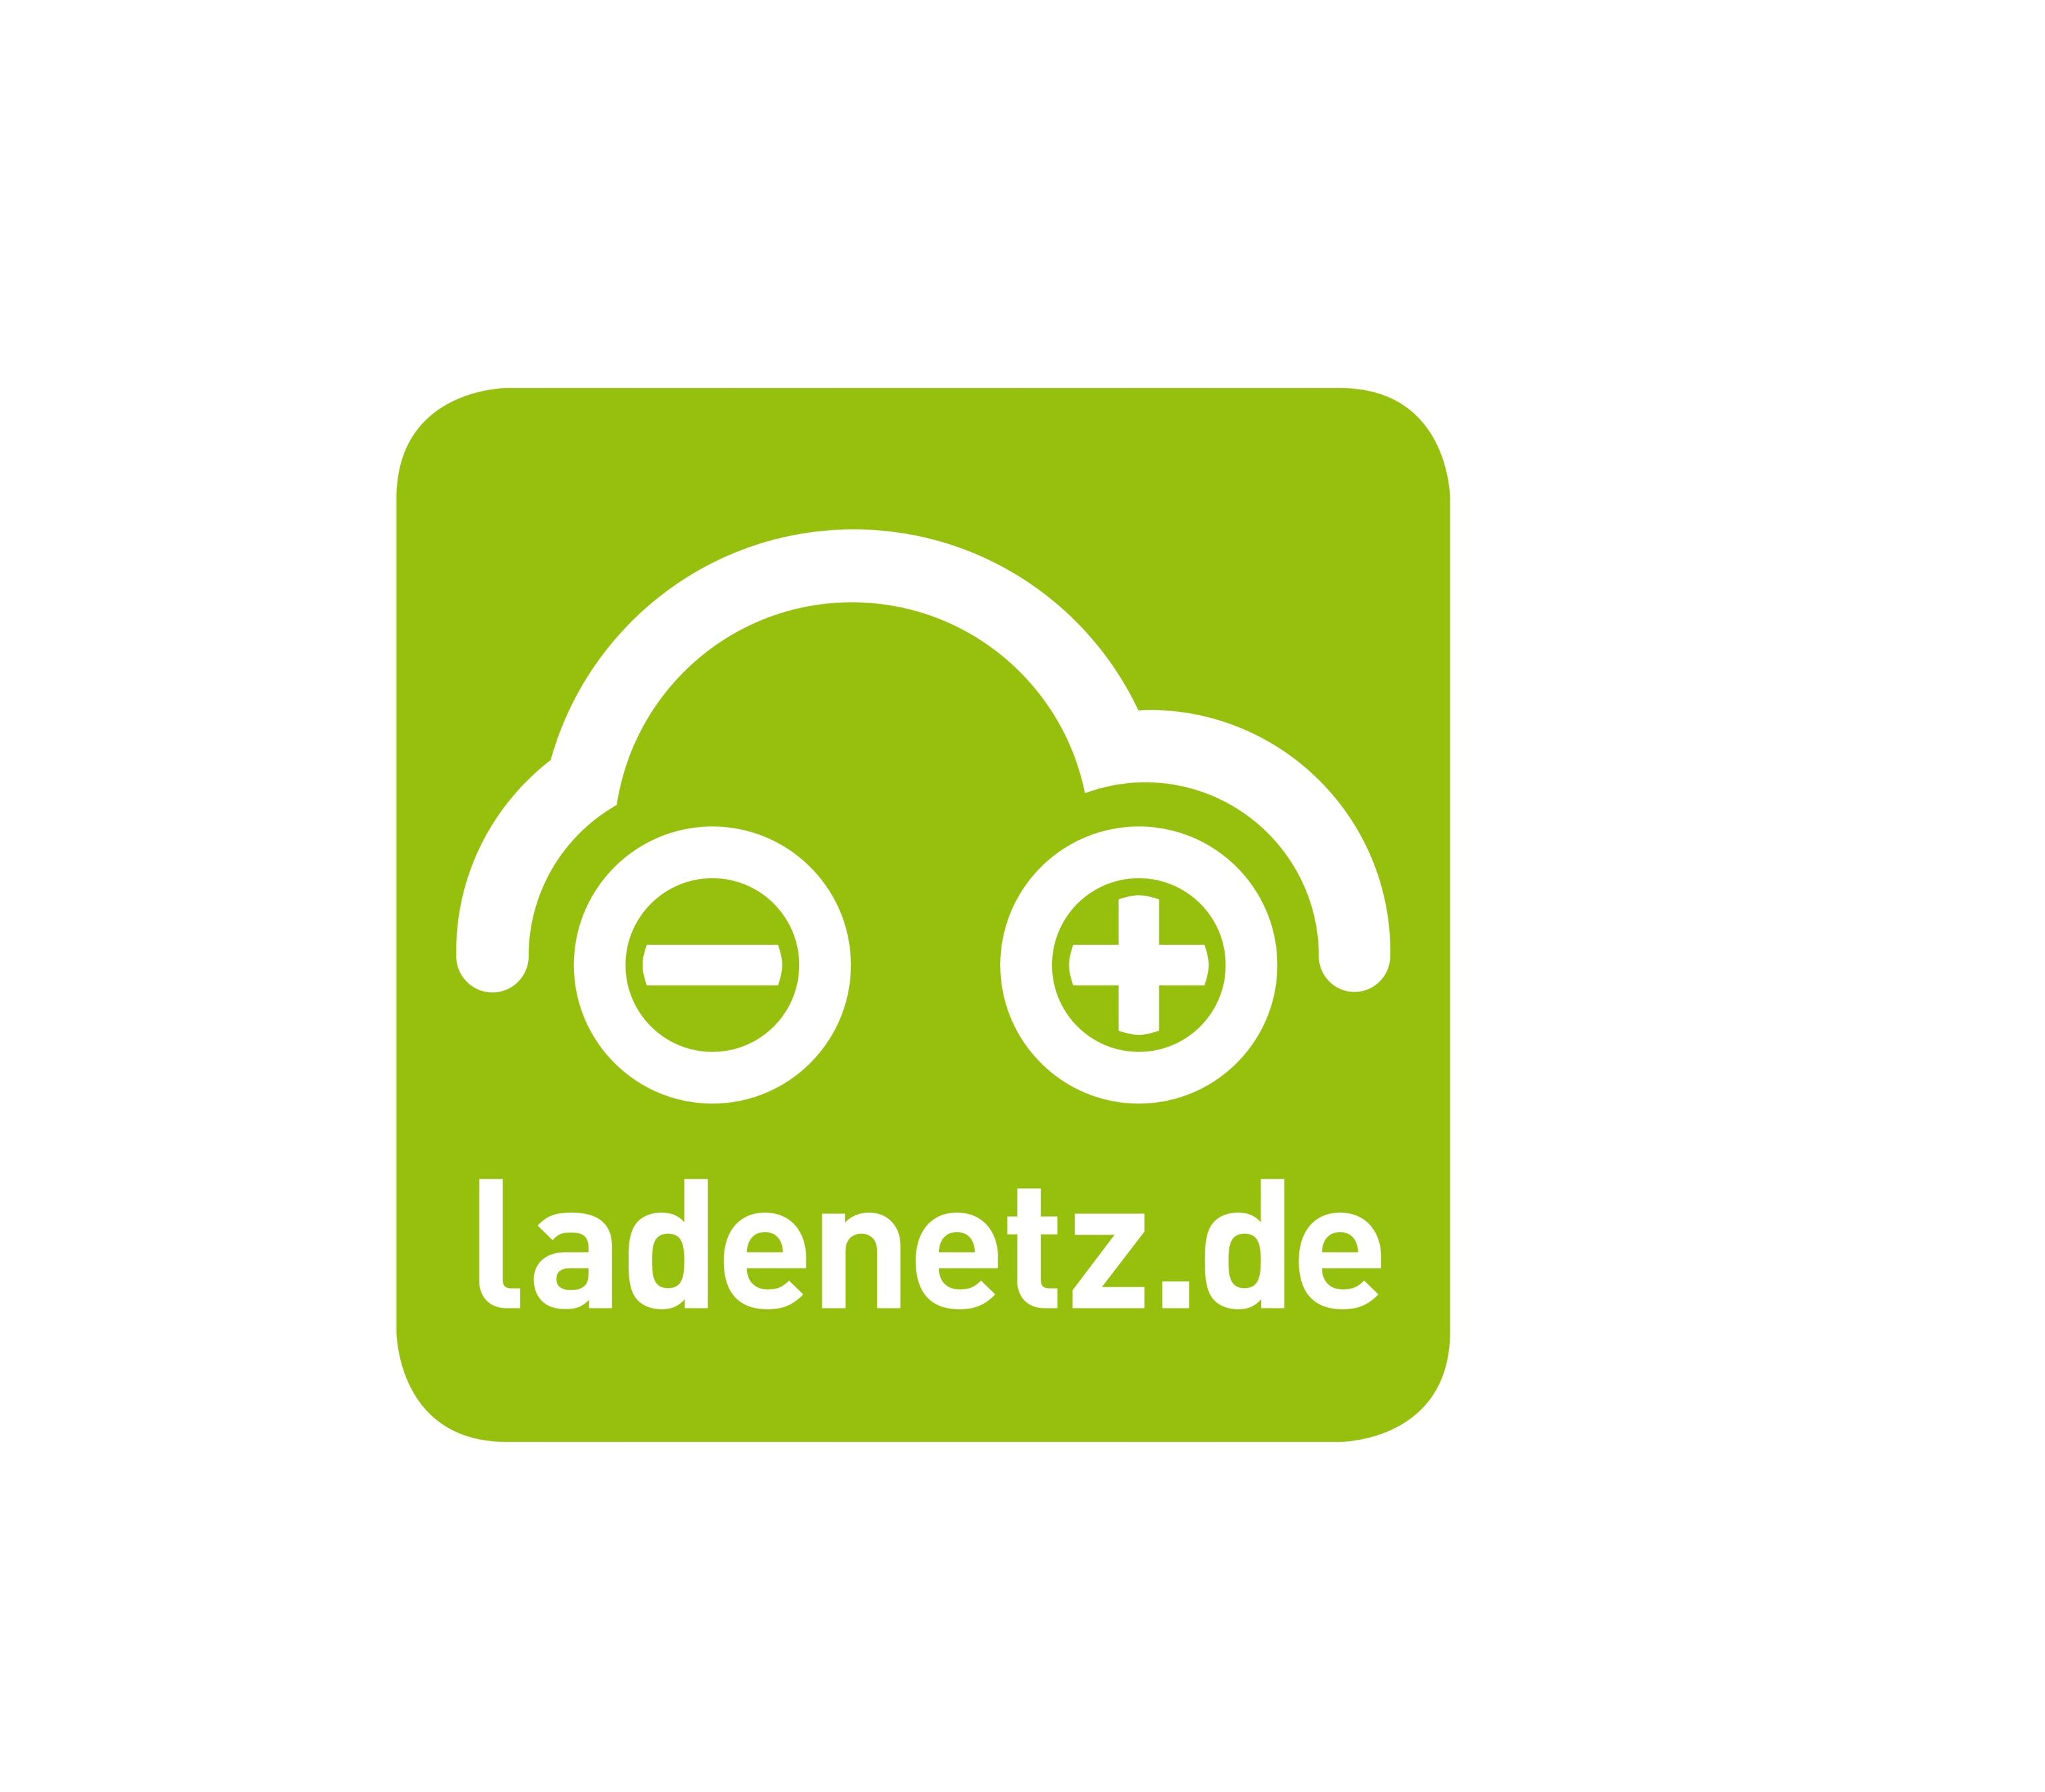 Charge card logo of Ladepay